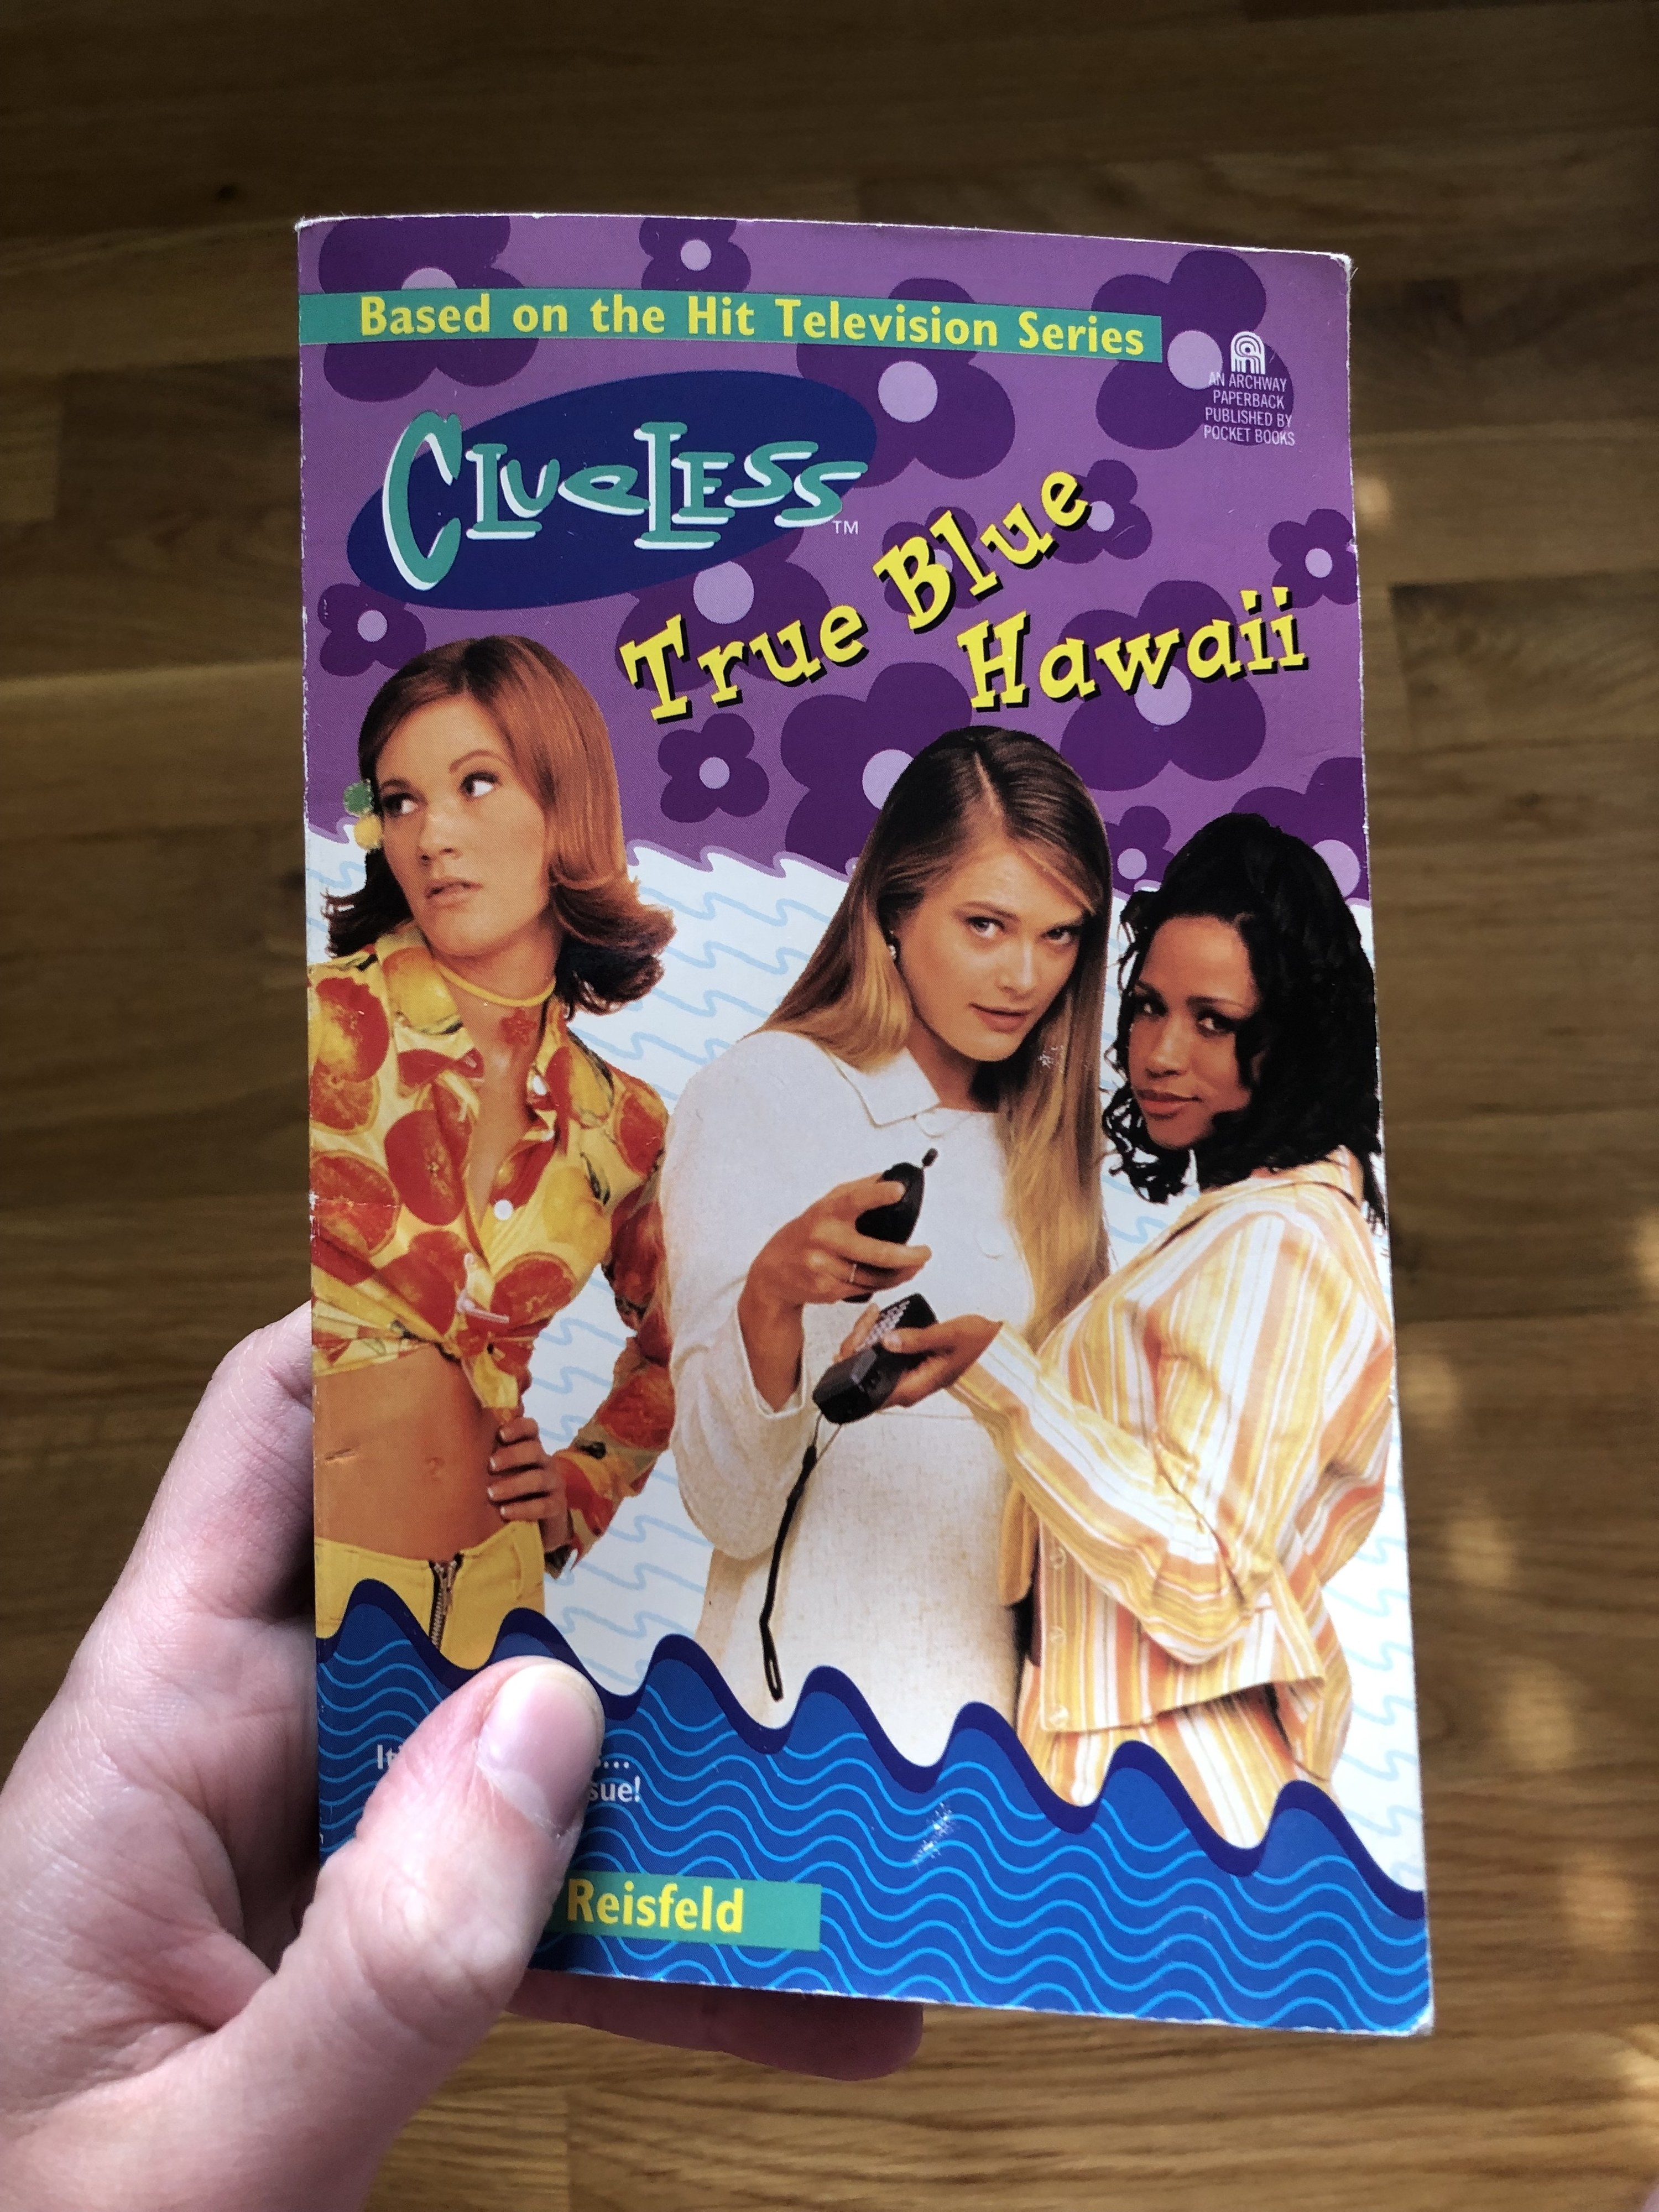 """""""Clueless"""" TV series actors posing for the book cover, titled: """"Clueless: True Blue Hawaii"""""""